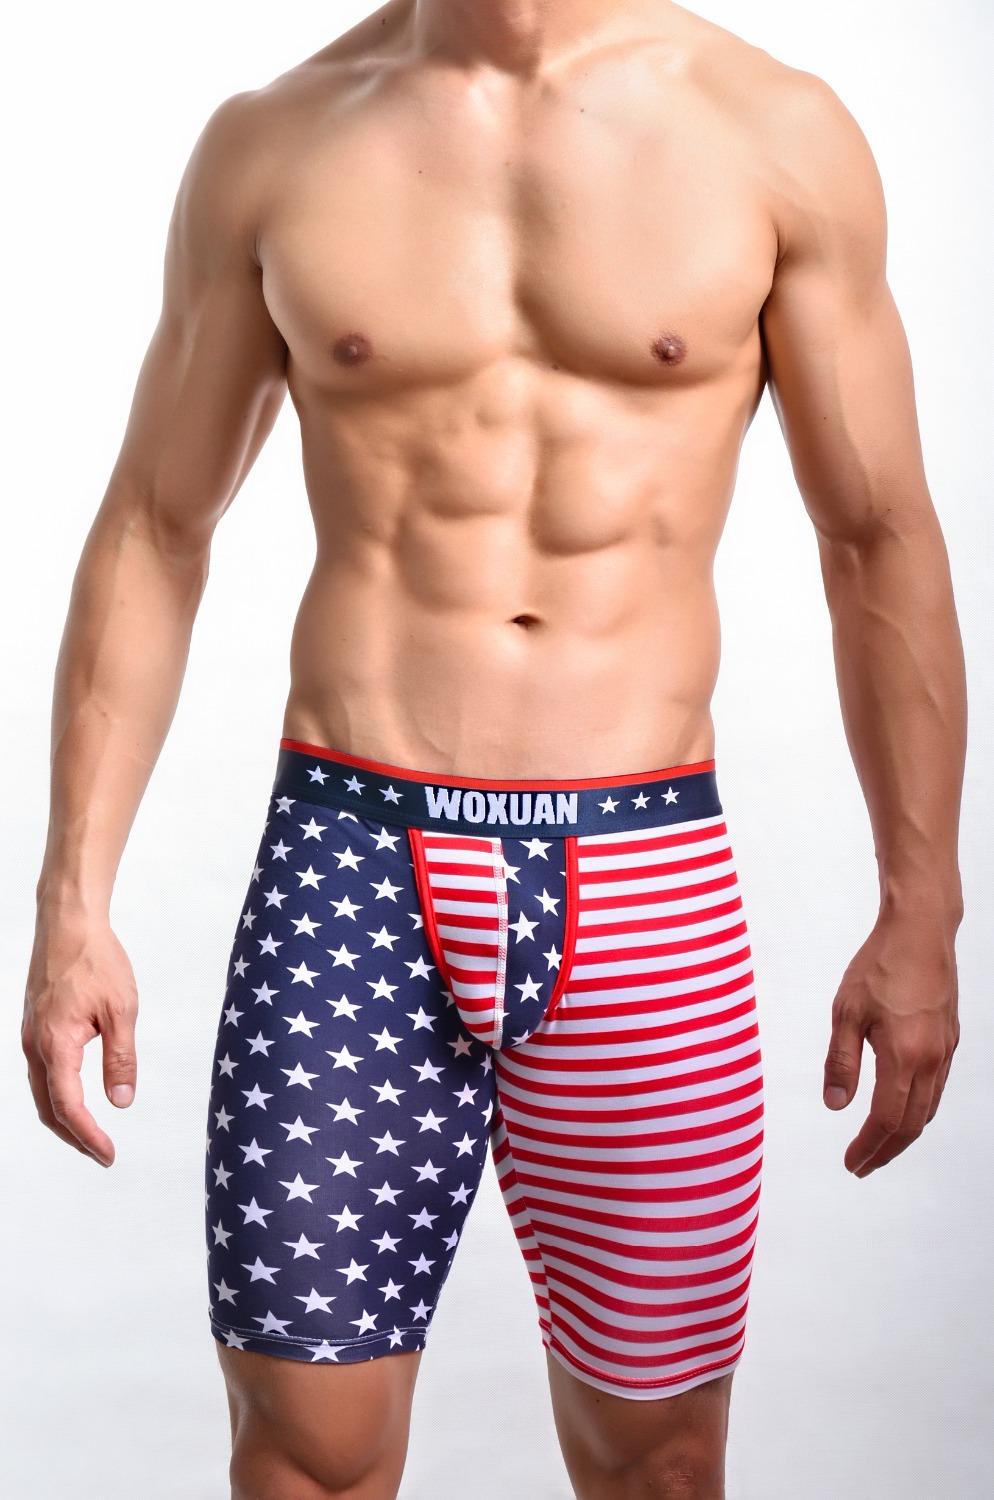 New Fashion USA Flag Printed Shorts Men Sexy Novelty Skinny Leggings Bottoms/Gay Funny Lounge Pants Beachwear FX1018